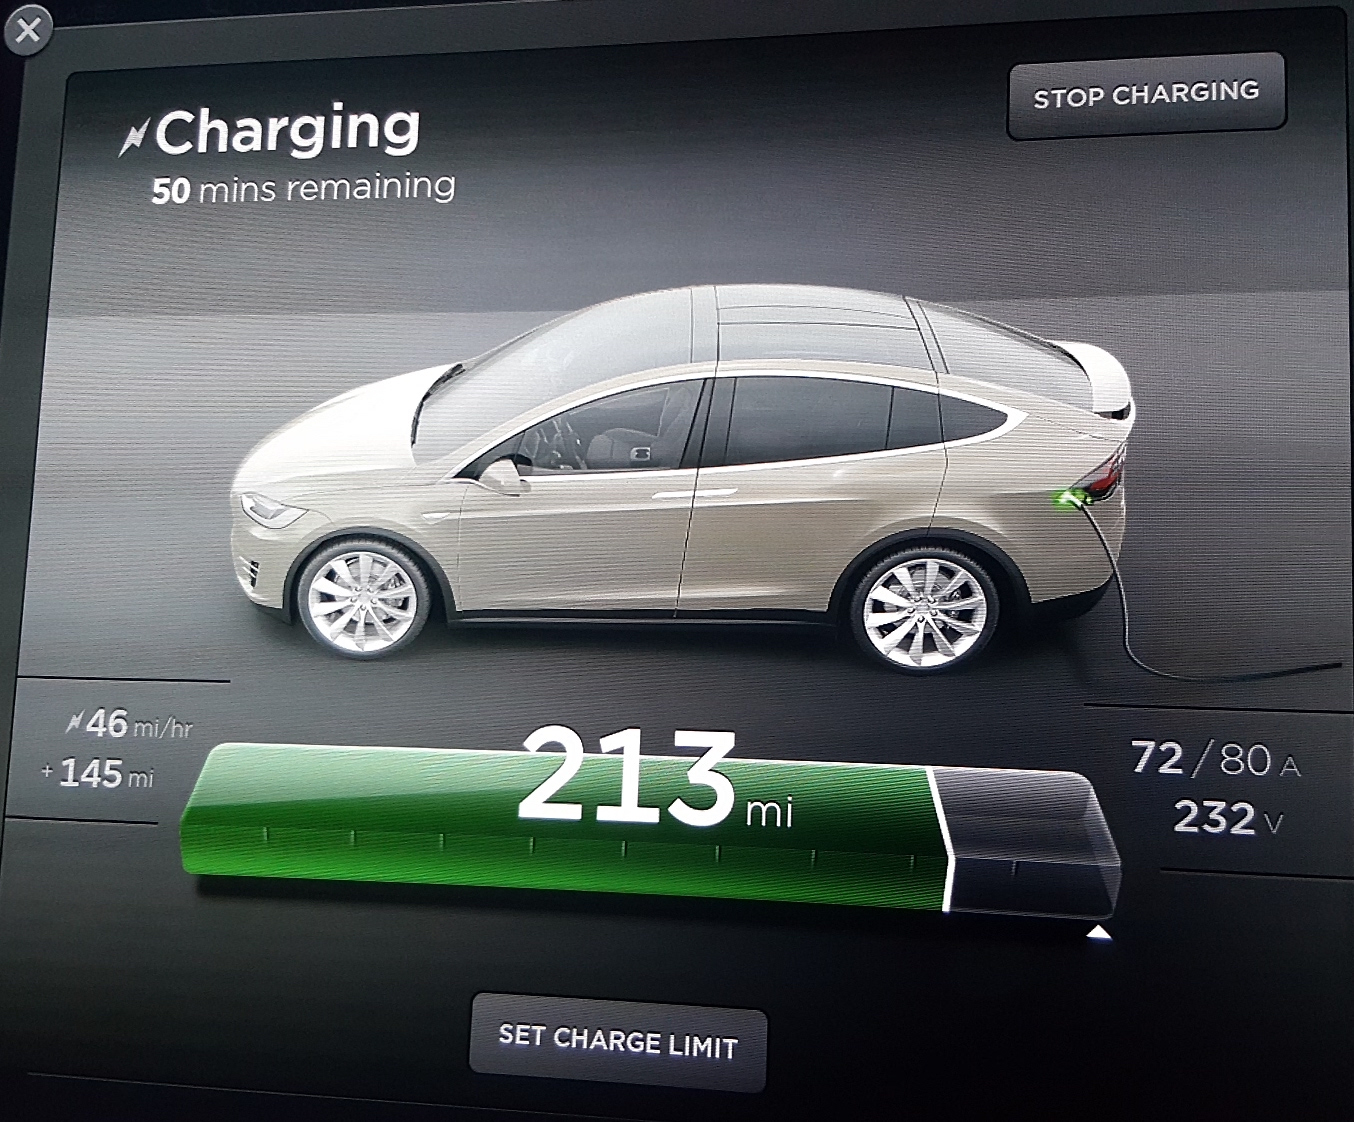 Here's what the display looks like on our touchscreen during charging.We stopped in Bend, OR, to explore the town. While at the destination charger at the Riverbend Hotel, we enjoyed a lovely lunch at their restaurant overlooking the river, then took a pleasant walk.